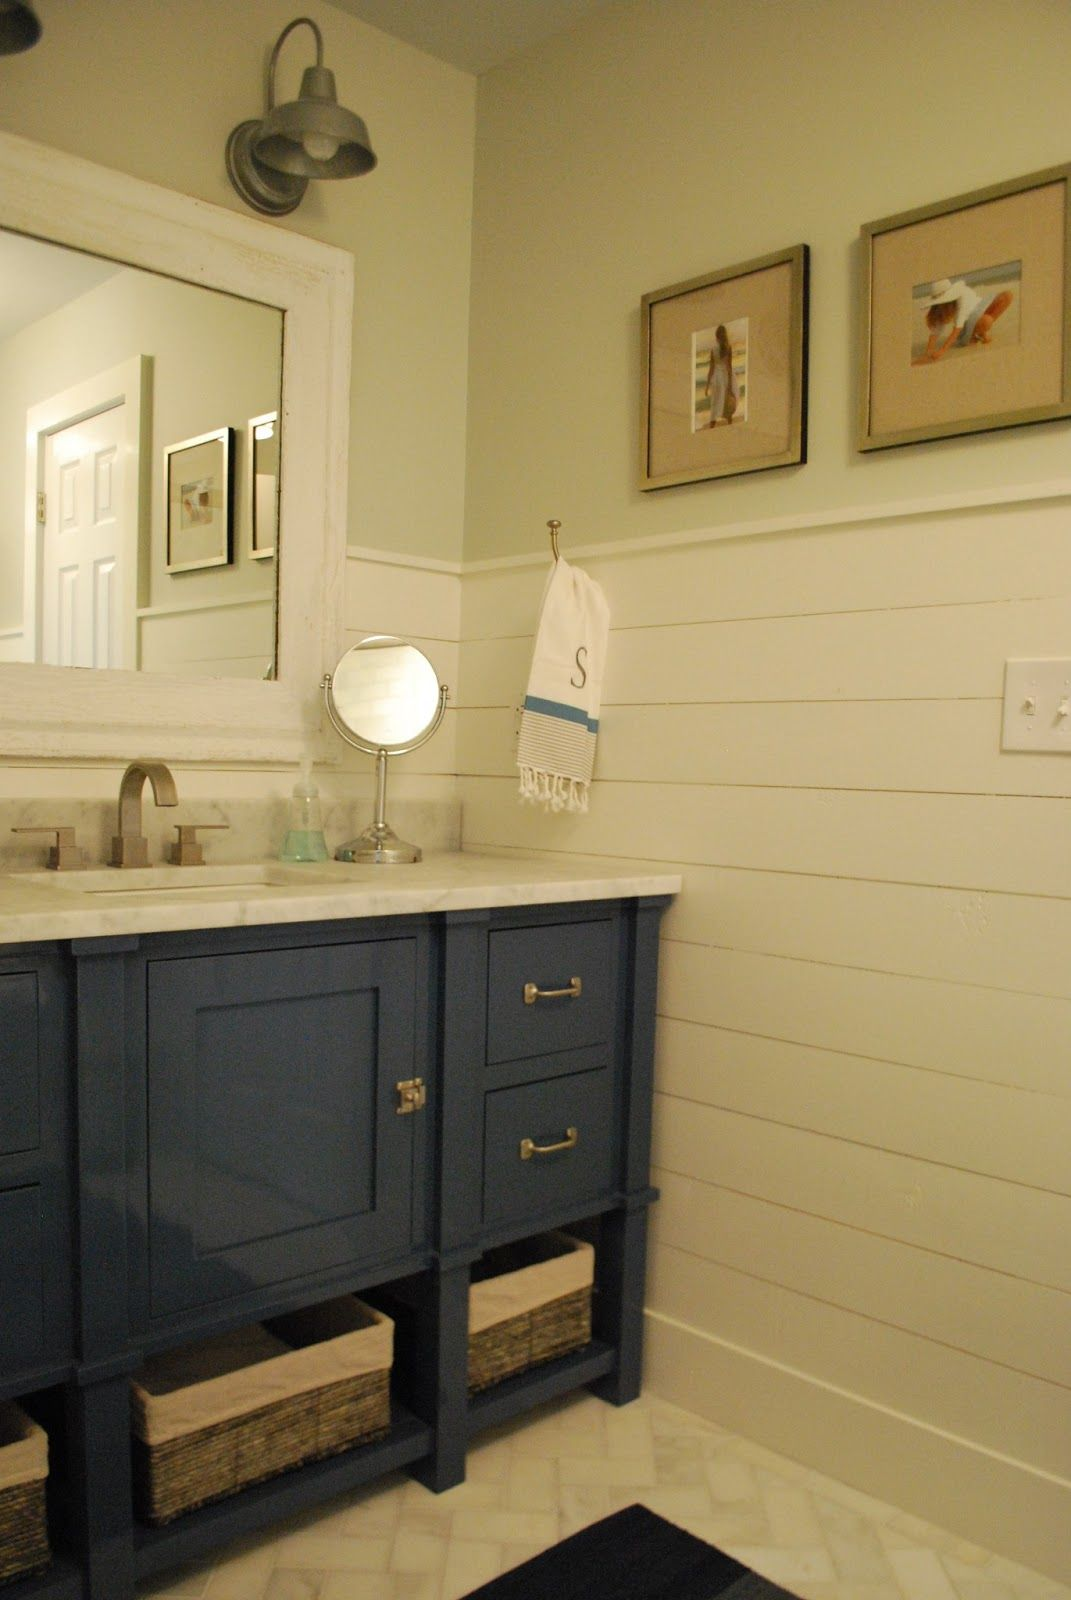 astounding light blue bathroom ideas | Lisa Gabrielson Design: April 2013 | Bathroom light ...